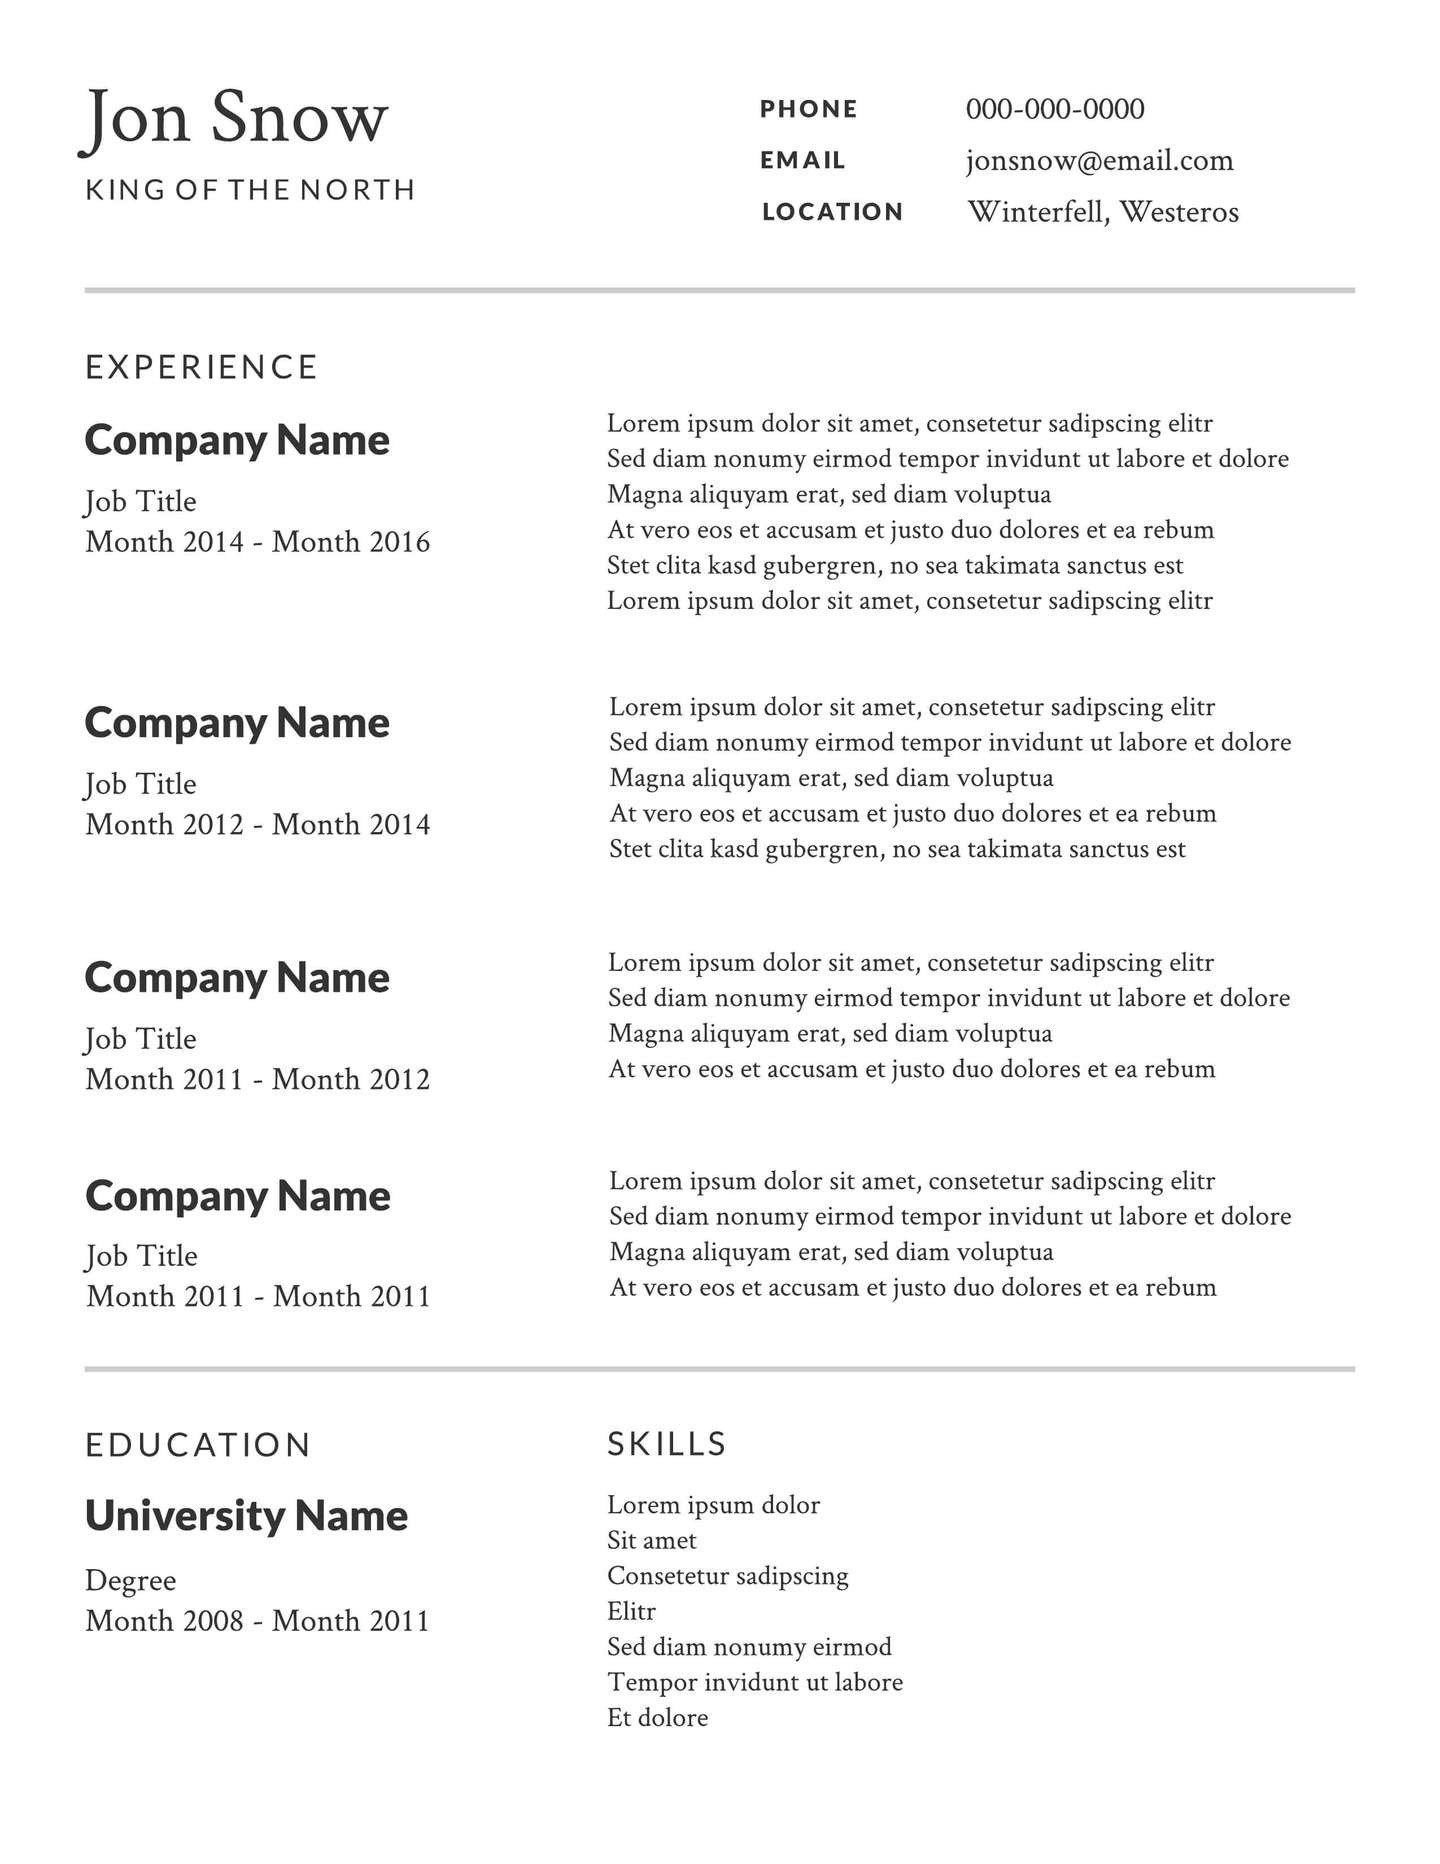 Free Template for Resume 2 Free Resume Templates & Examples Lucidpress